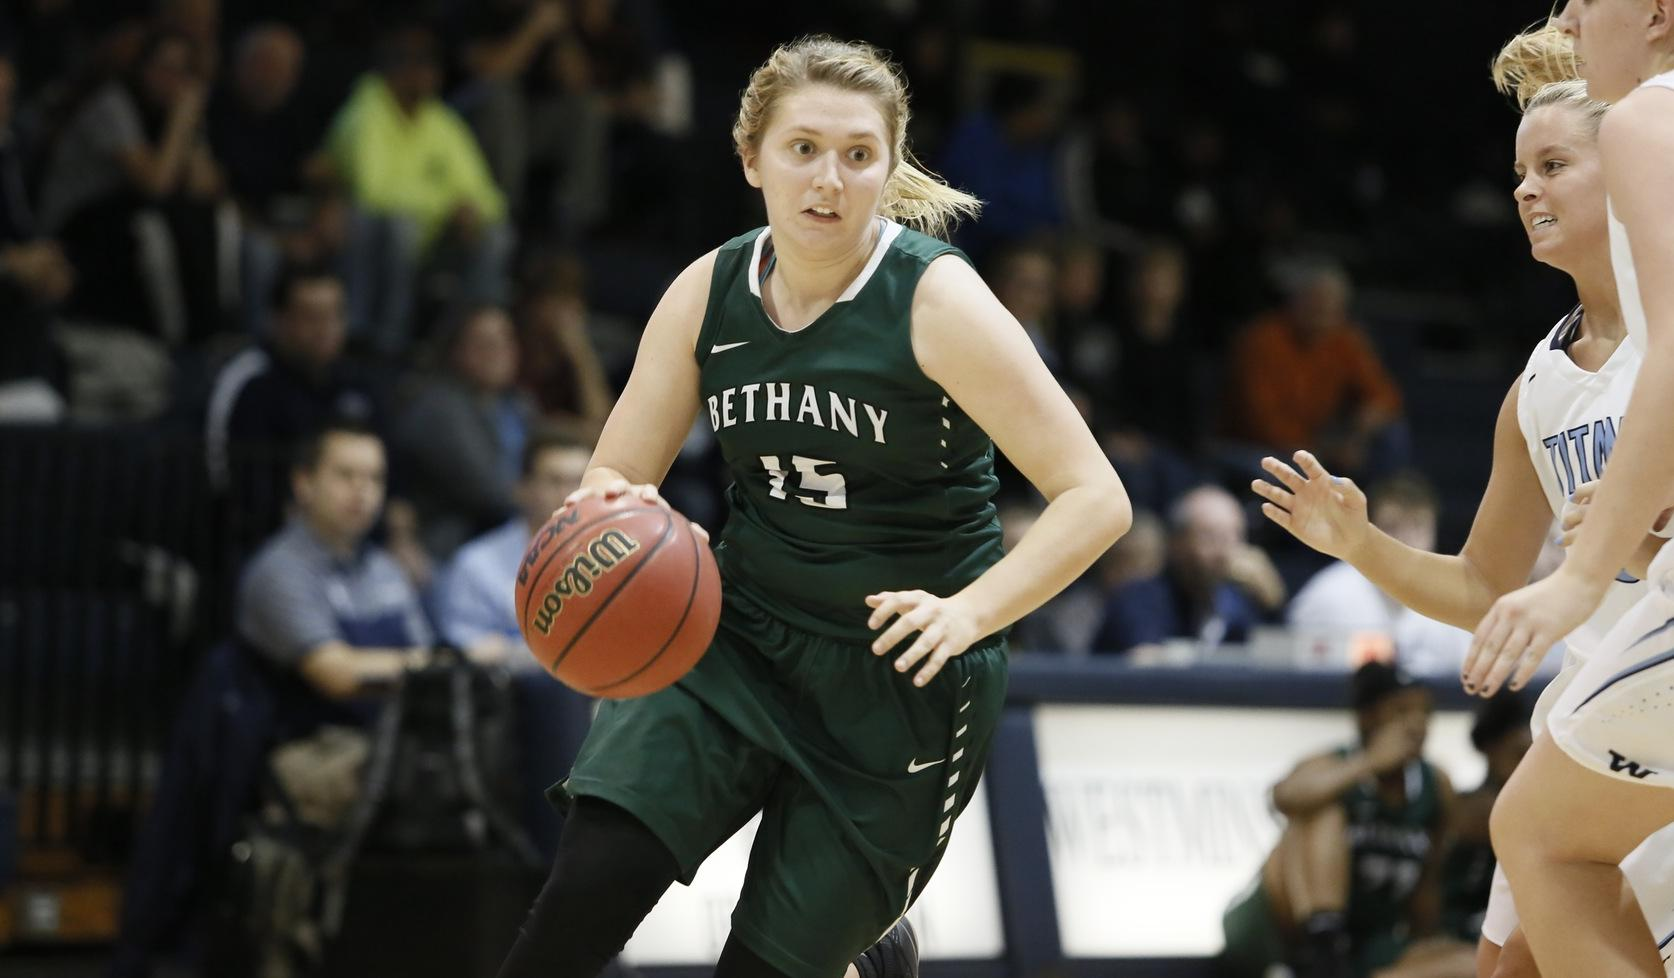 Bethany Handed 76-51 loss on the Road to Carnegie Mellon